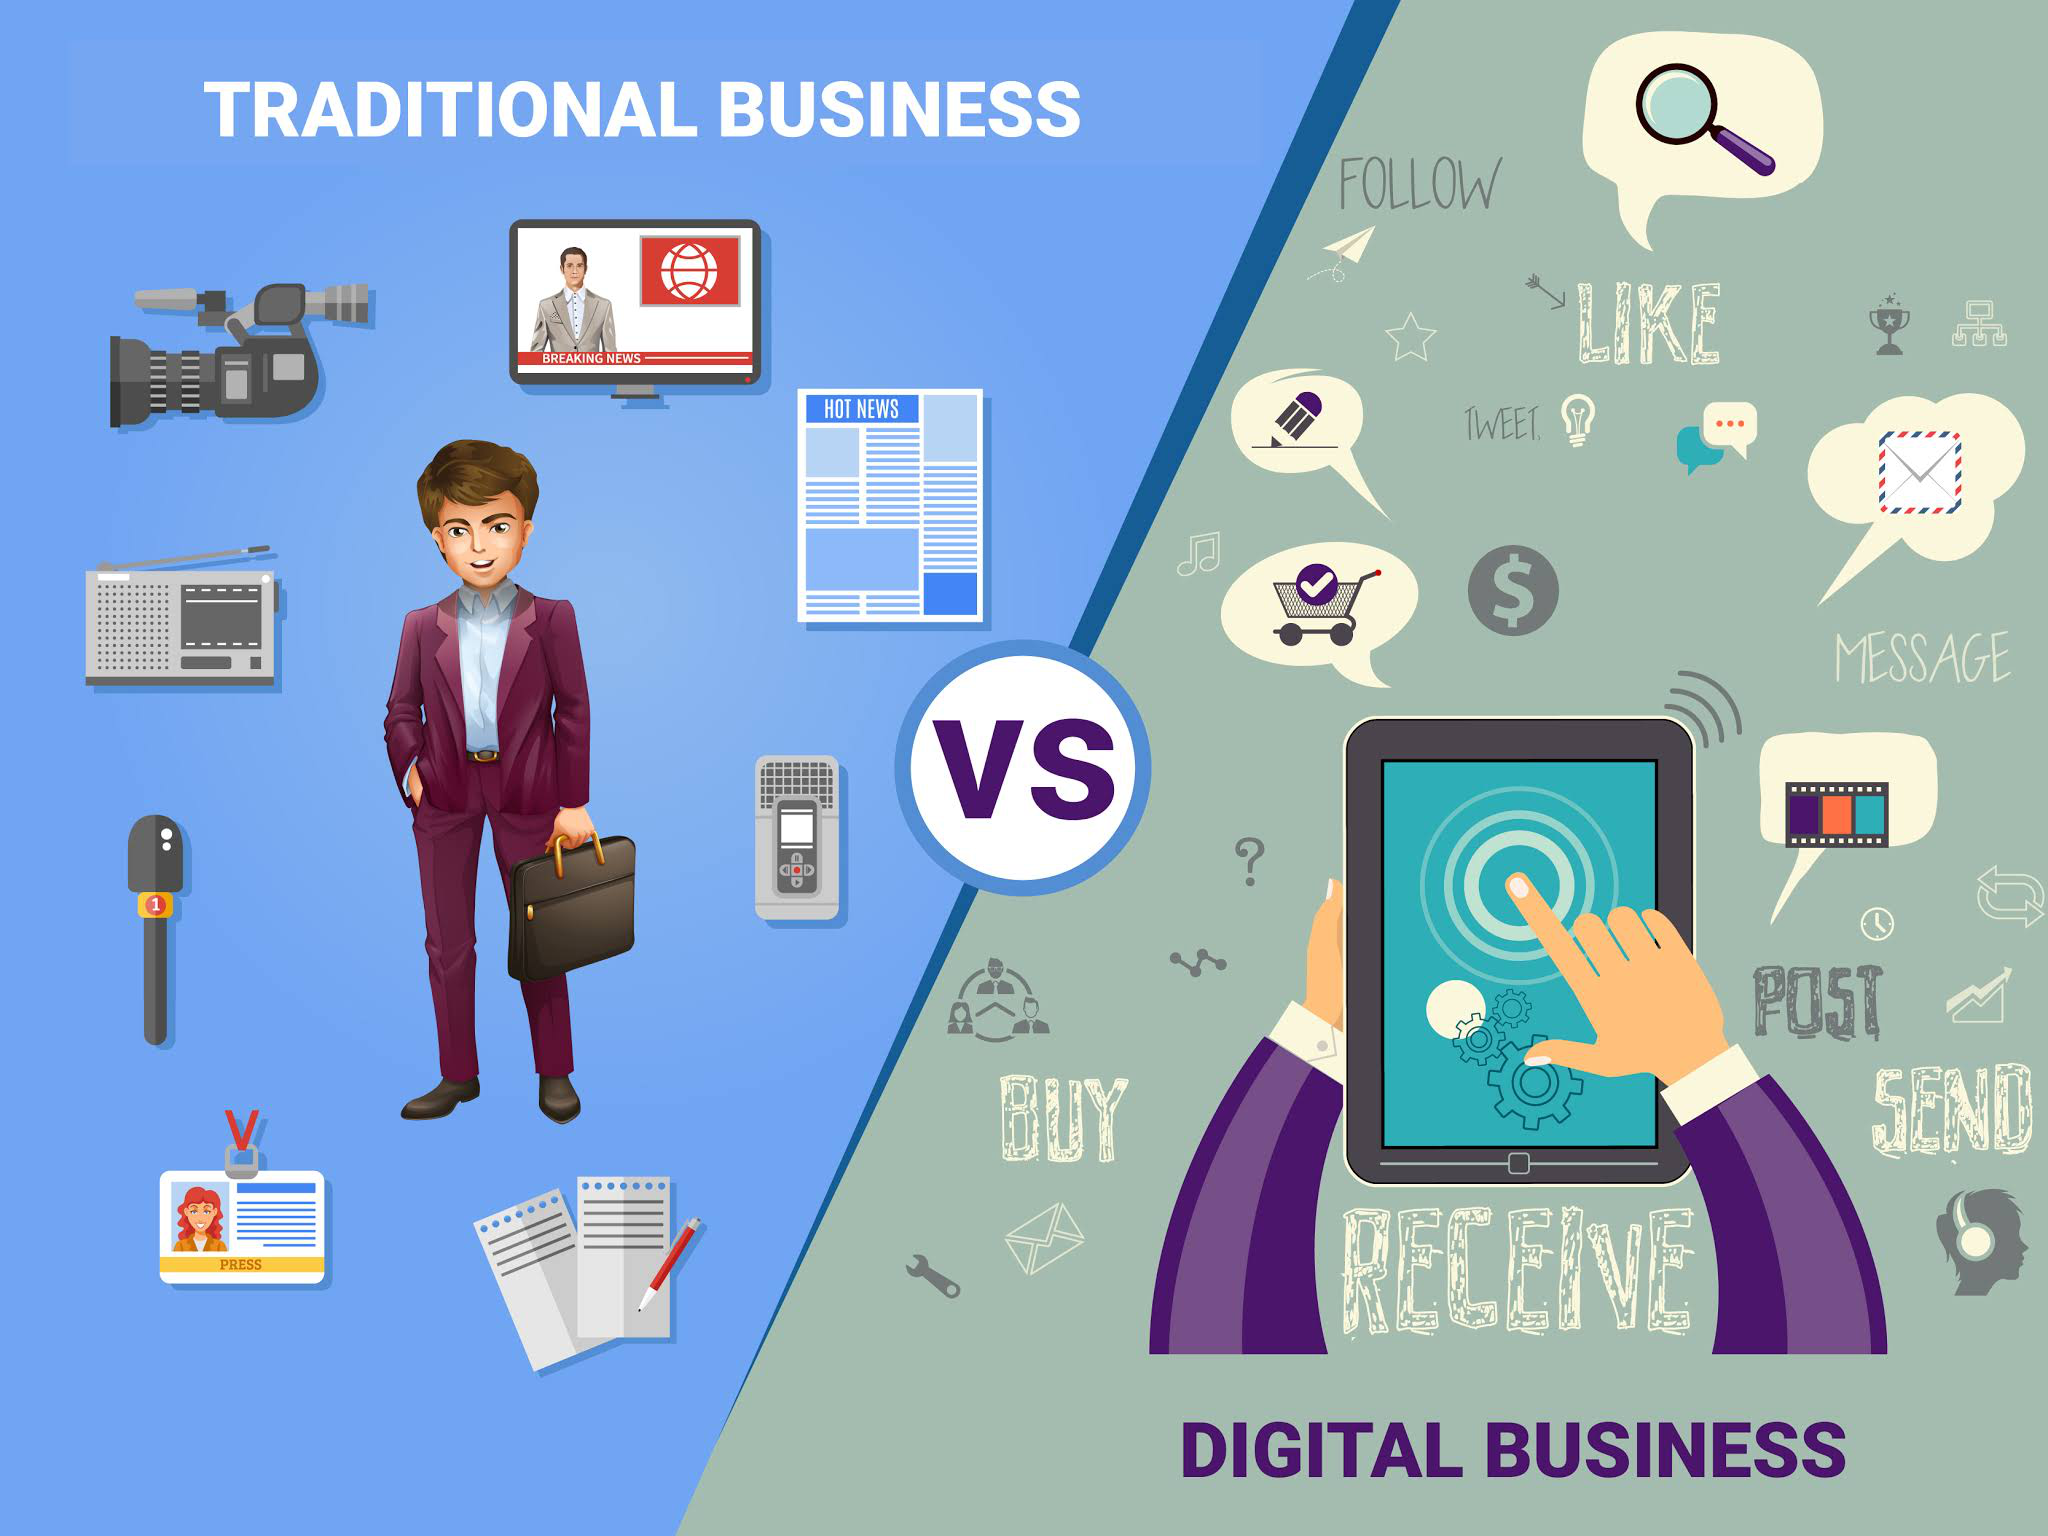 What is Differences in Traditional Business and Digital Business